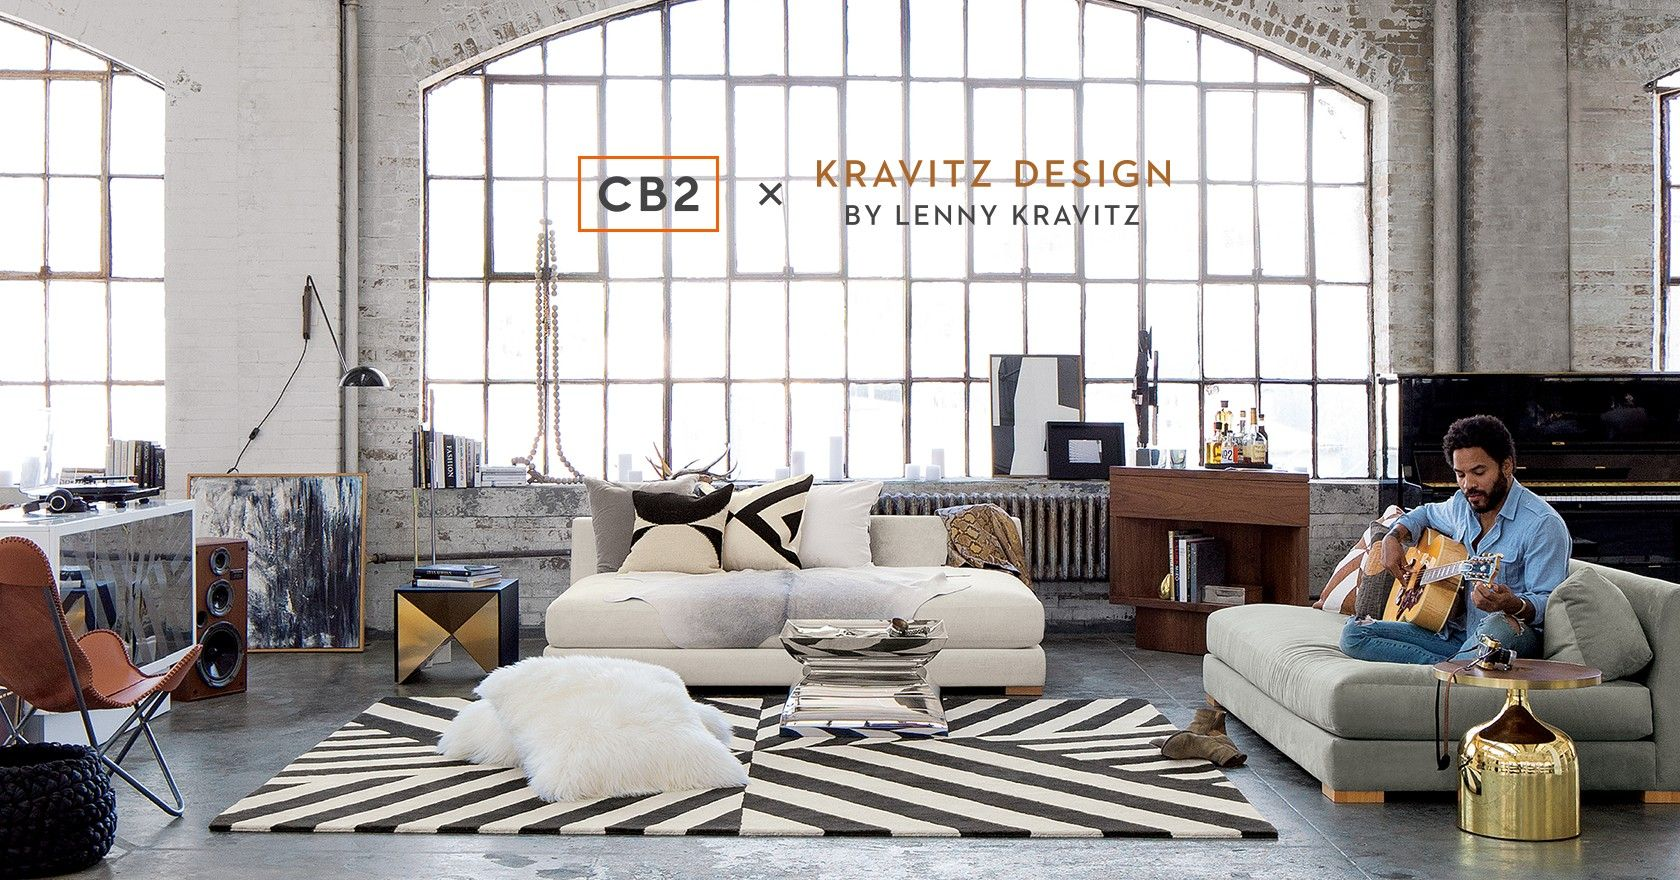 Cb2 modern furniture and home decor 70s furniture modern furniture furniture design